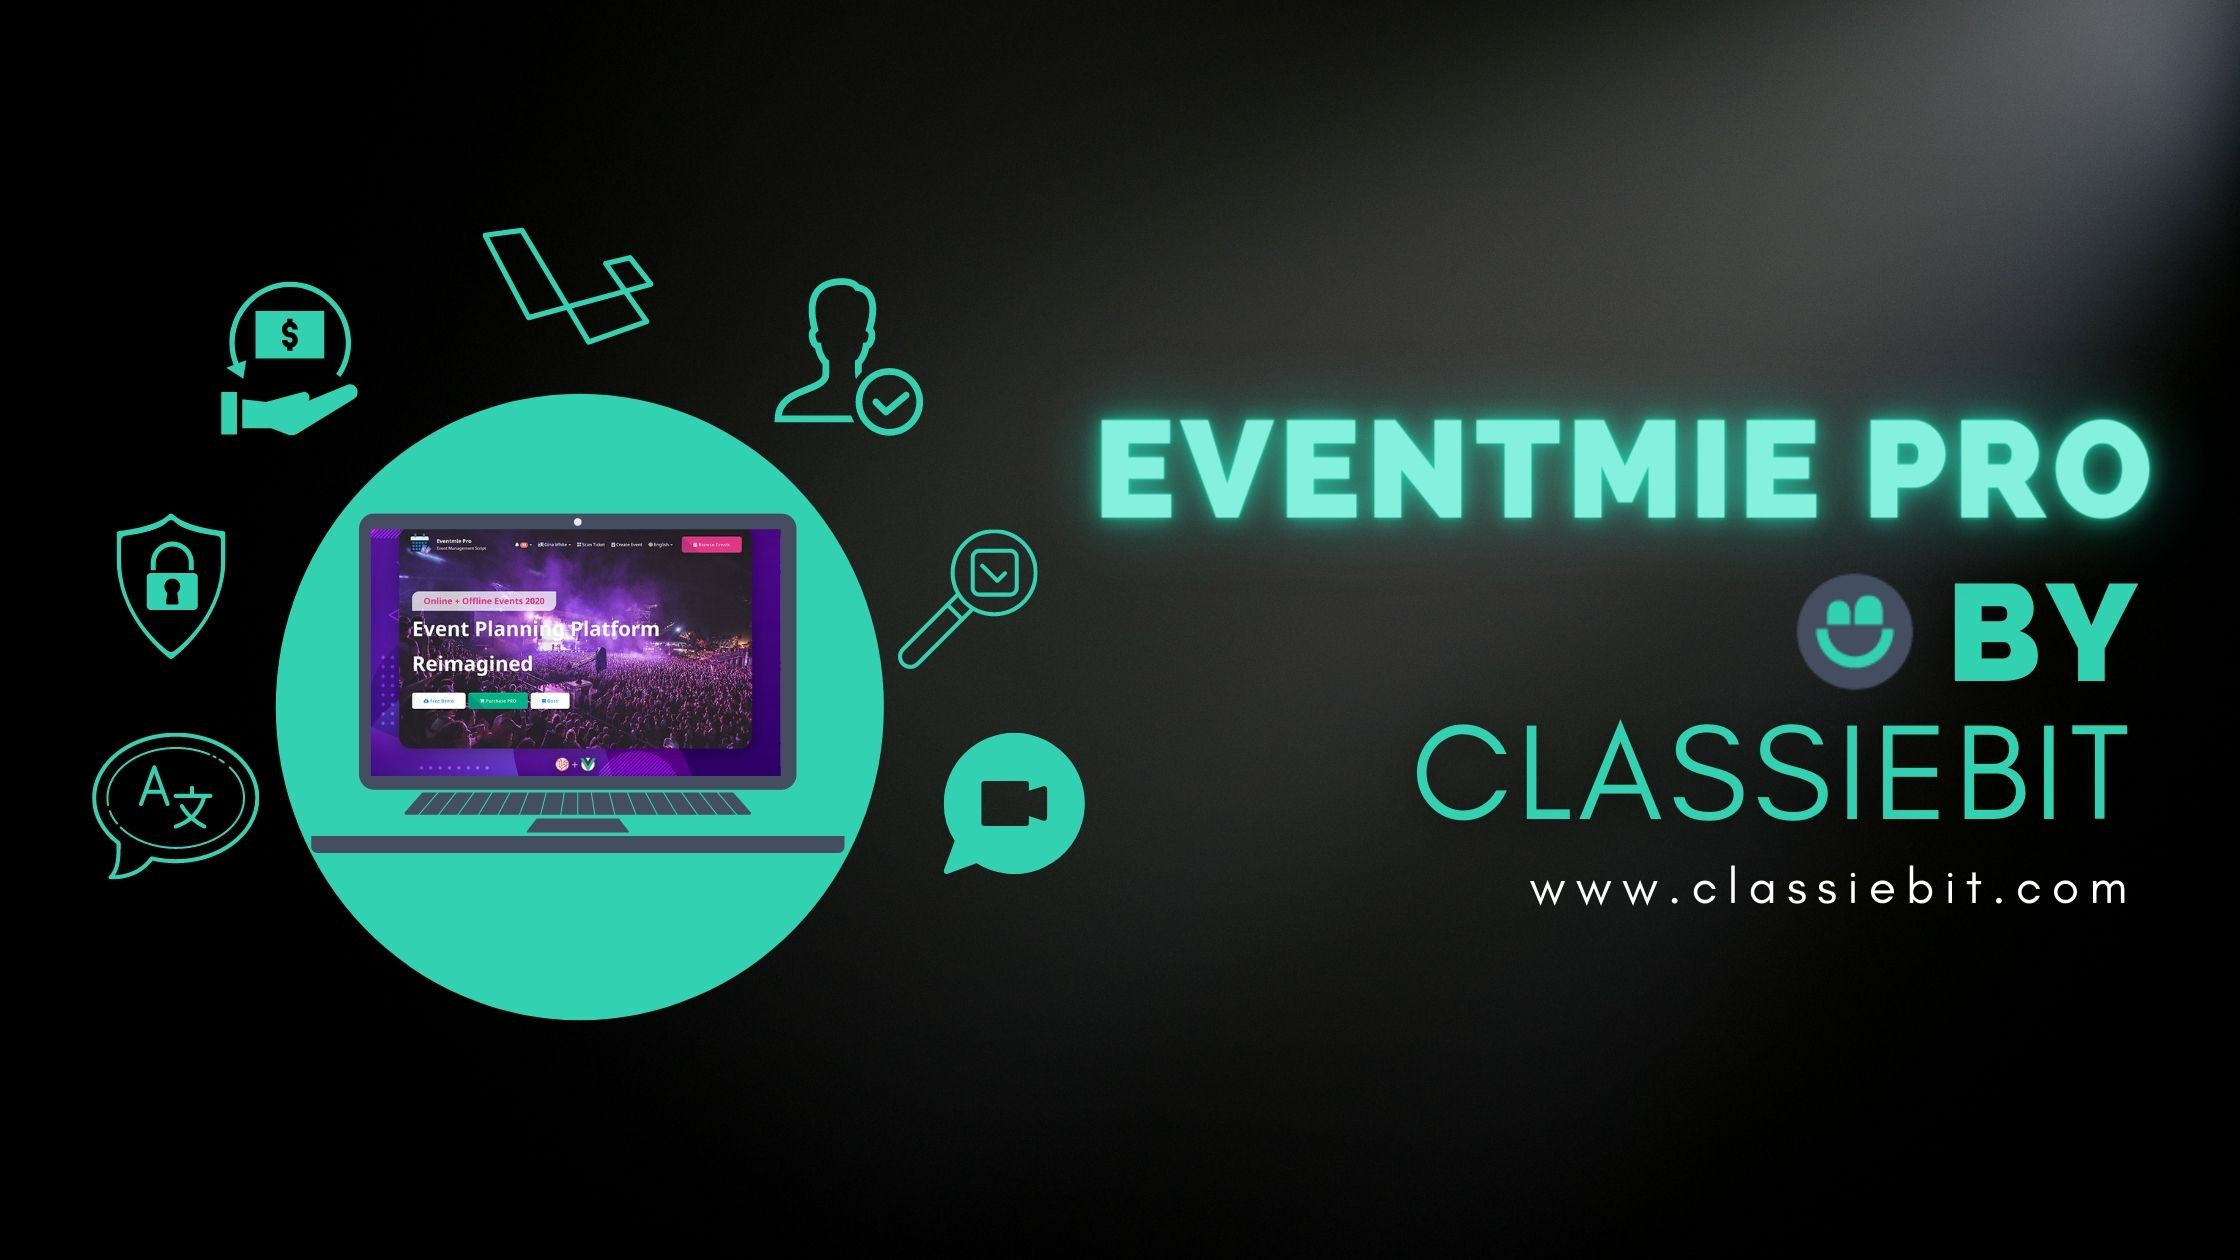 Features of Eventmie Pro